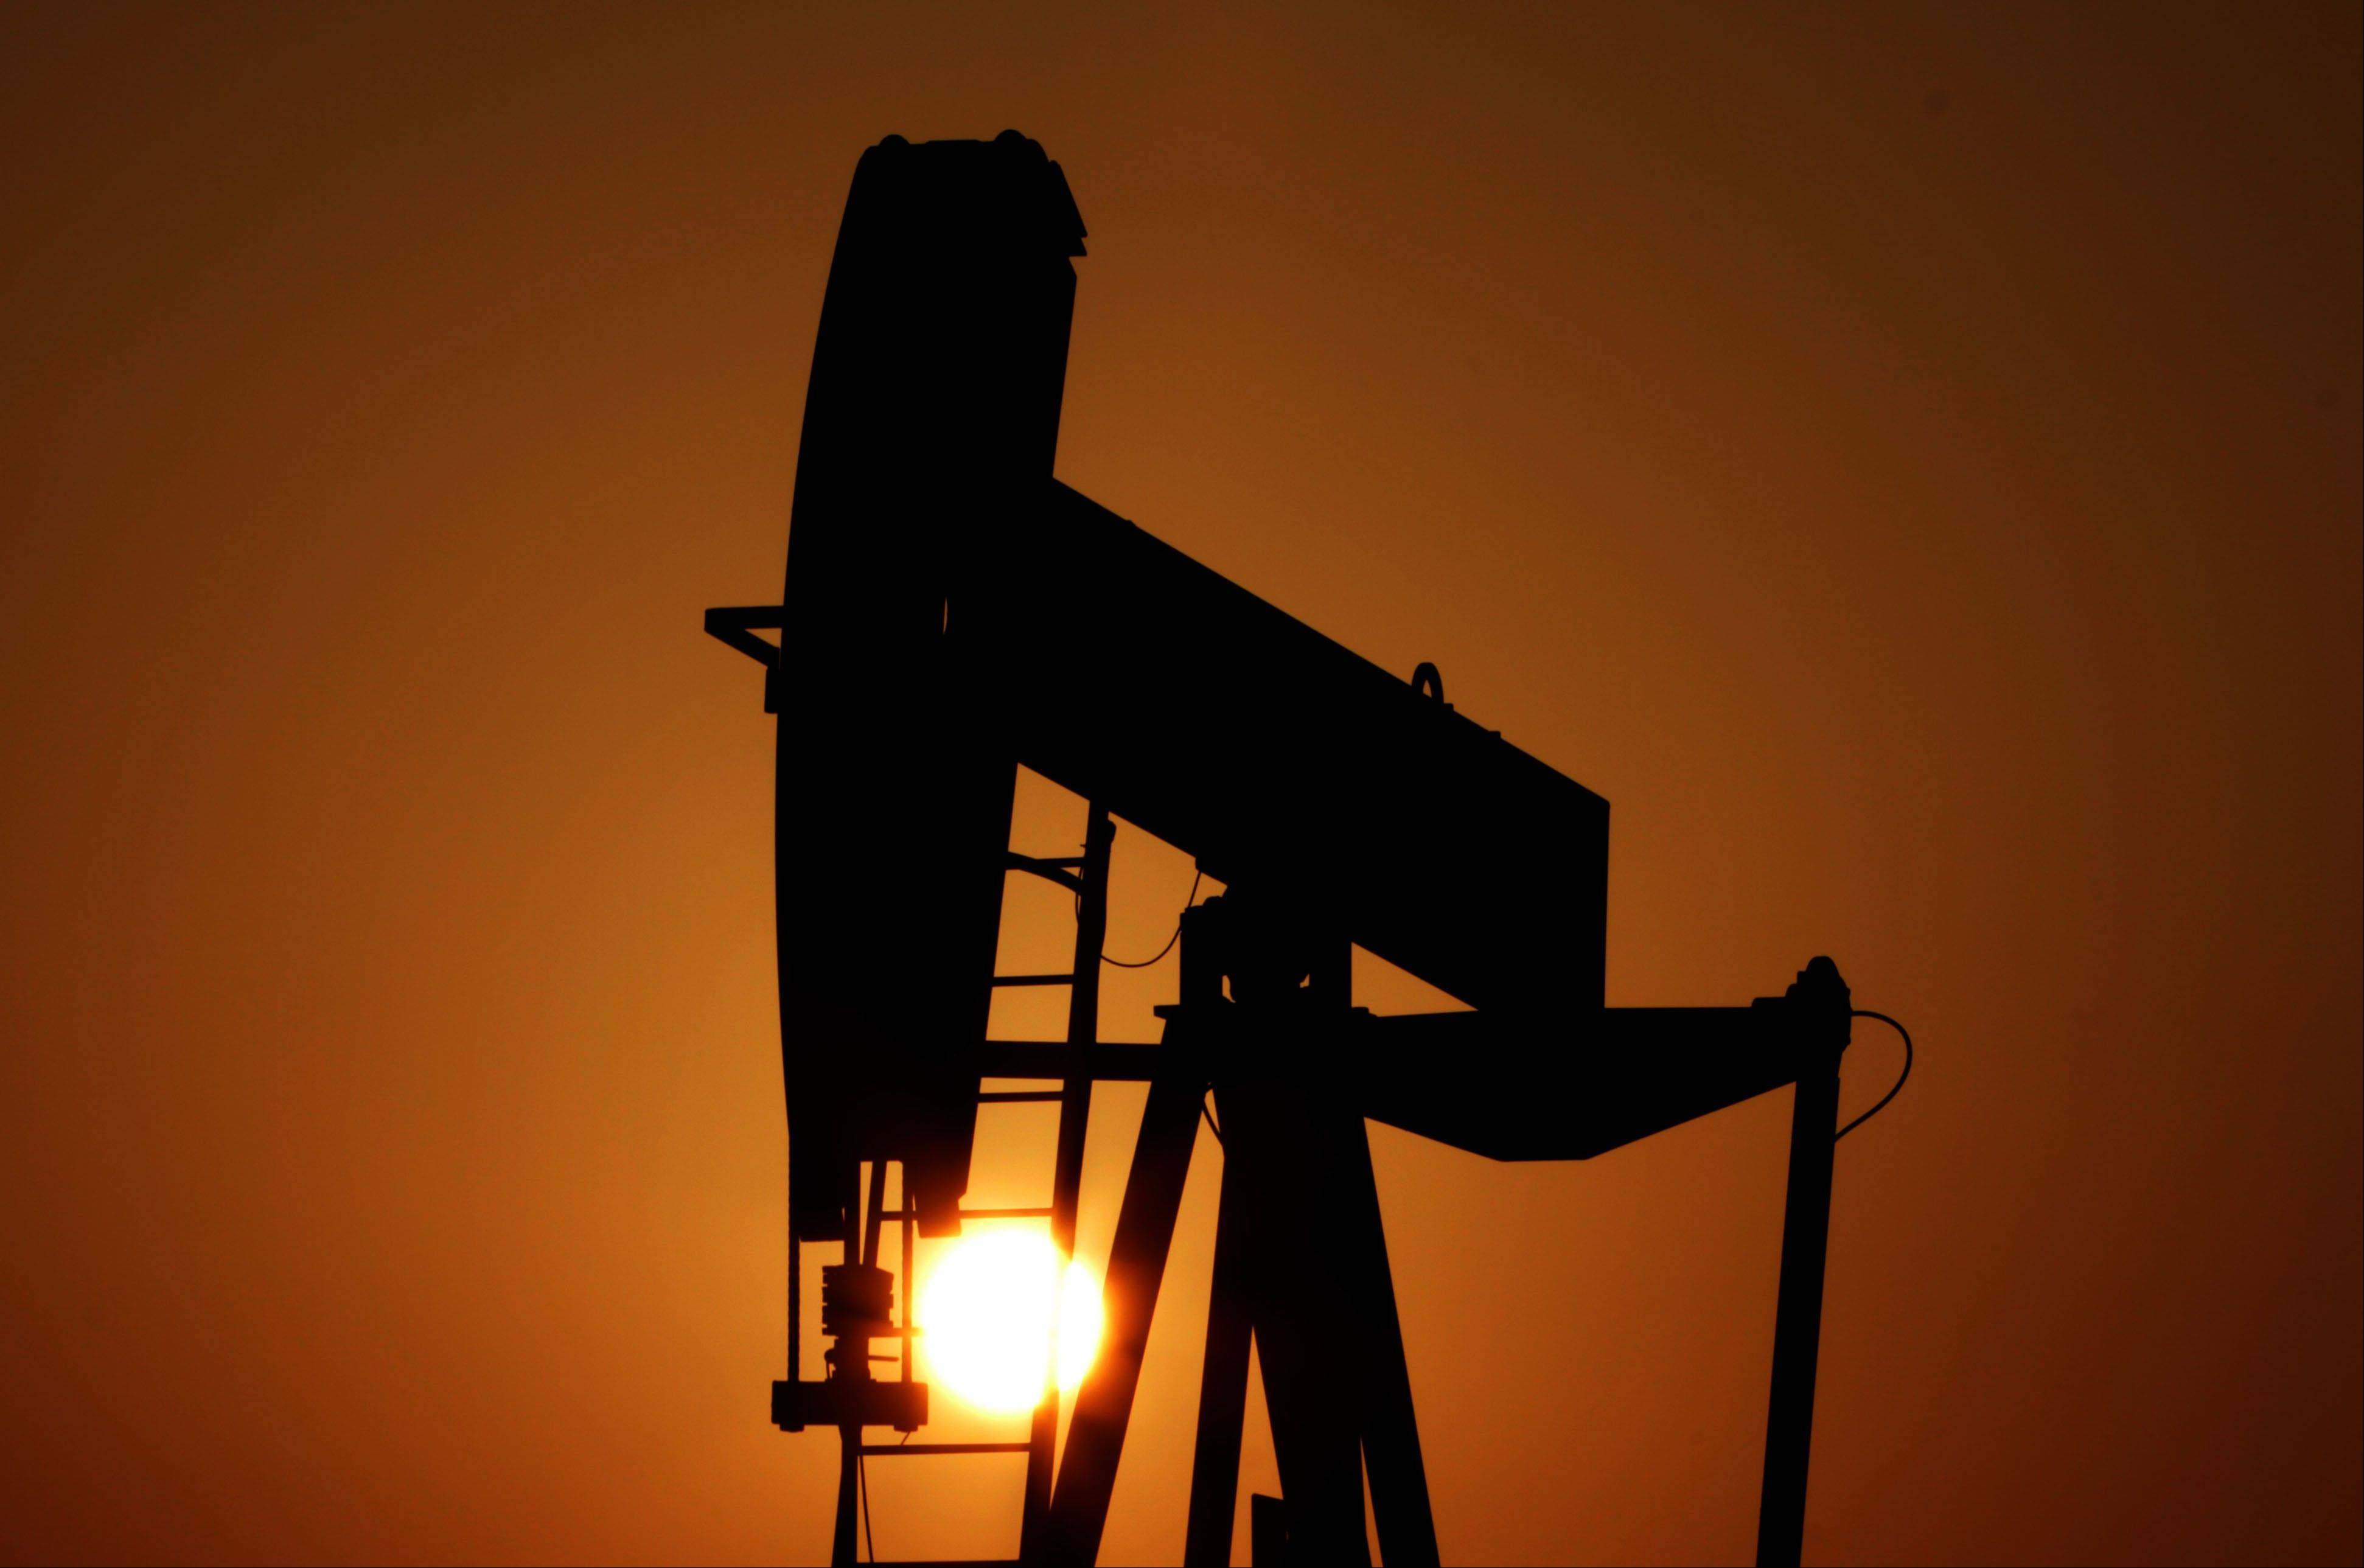 An oil pump works at sunset in the desert oil fields of Sakhir, Bahrain.